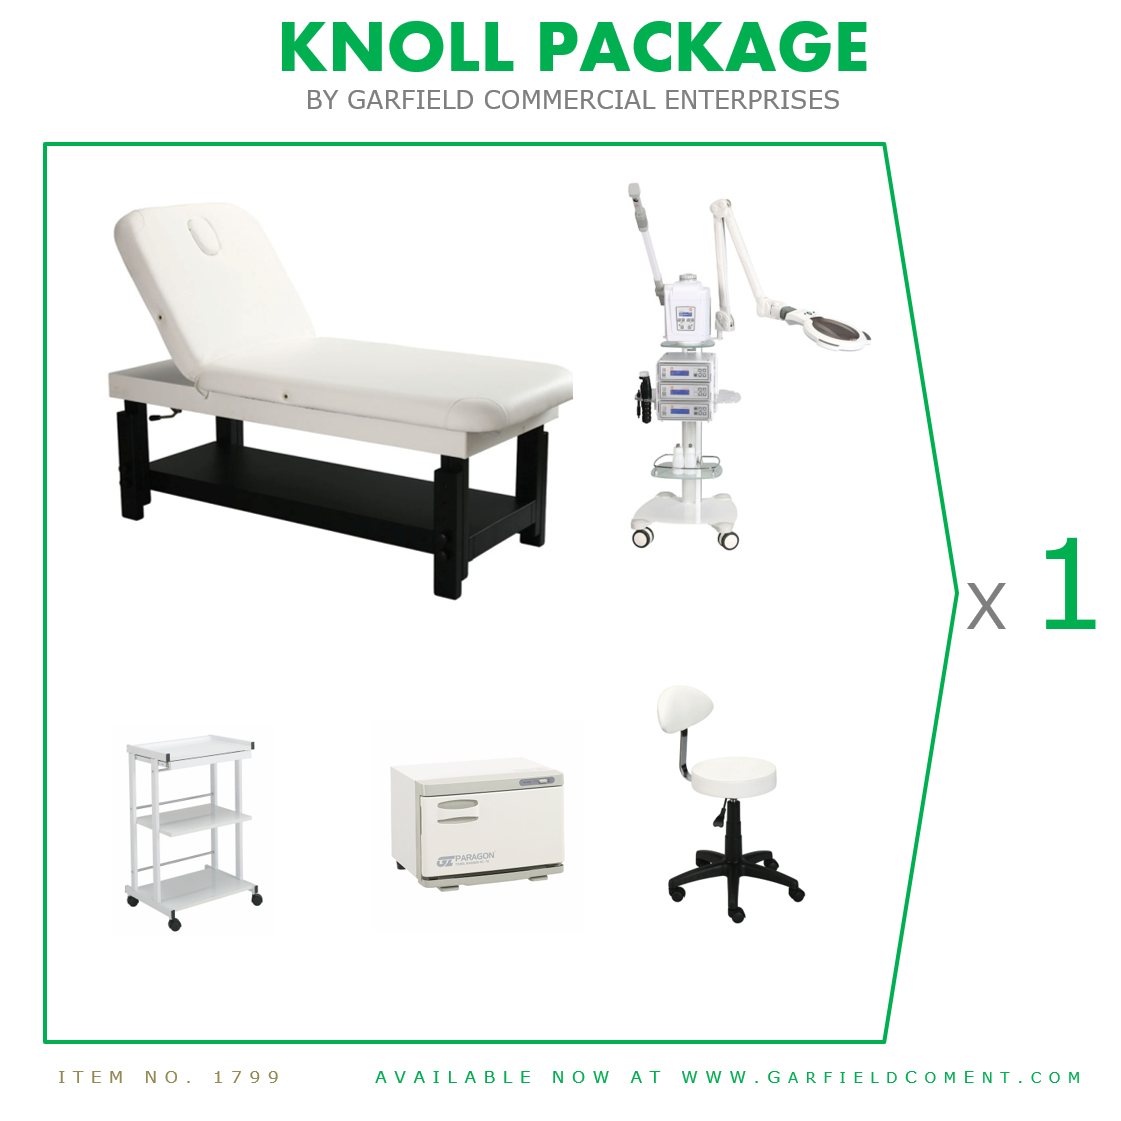 Knoll Spa Package